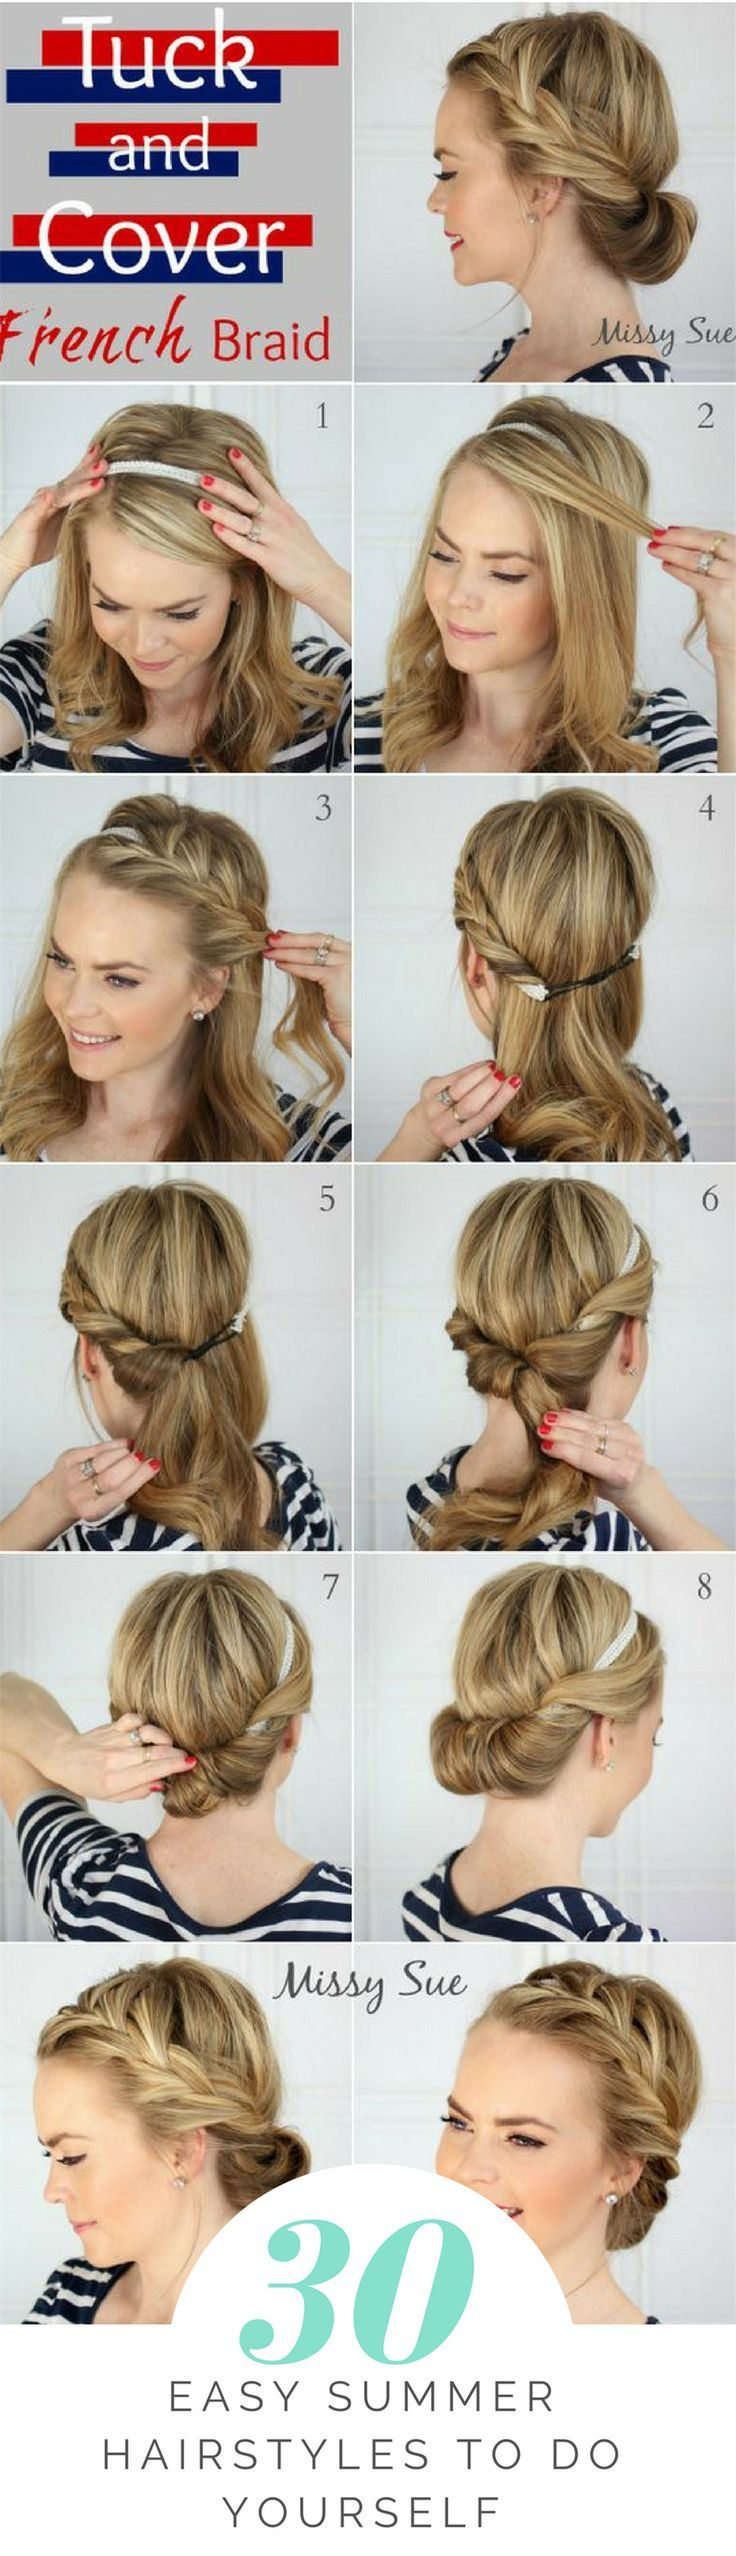 easy summer hairstyles to do yourself beautifully braided hair